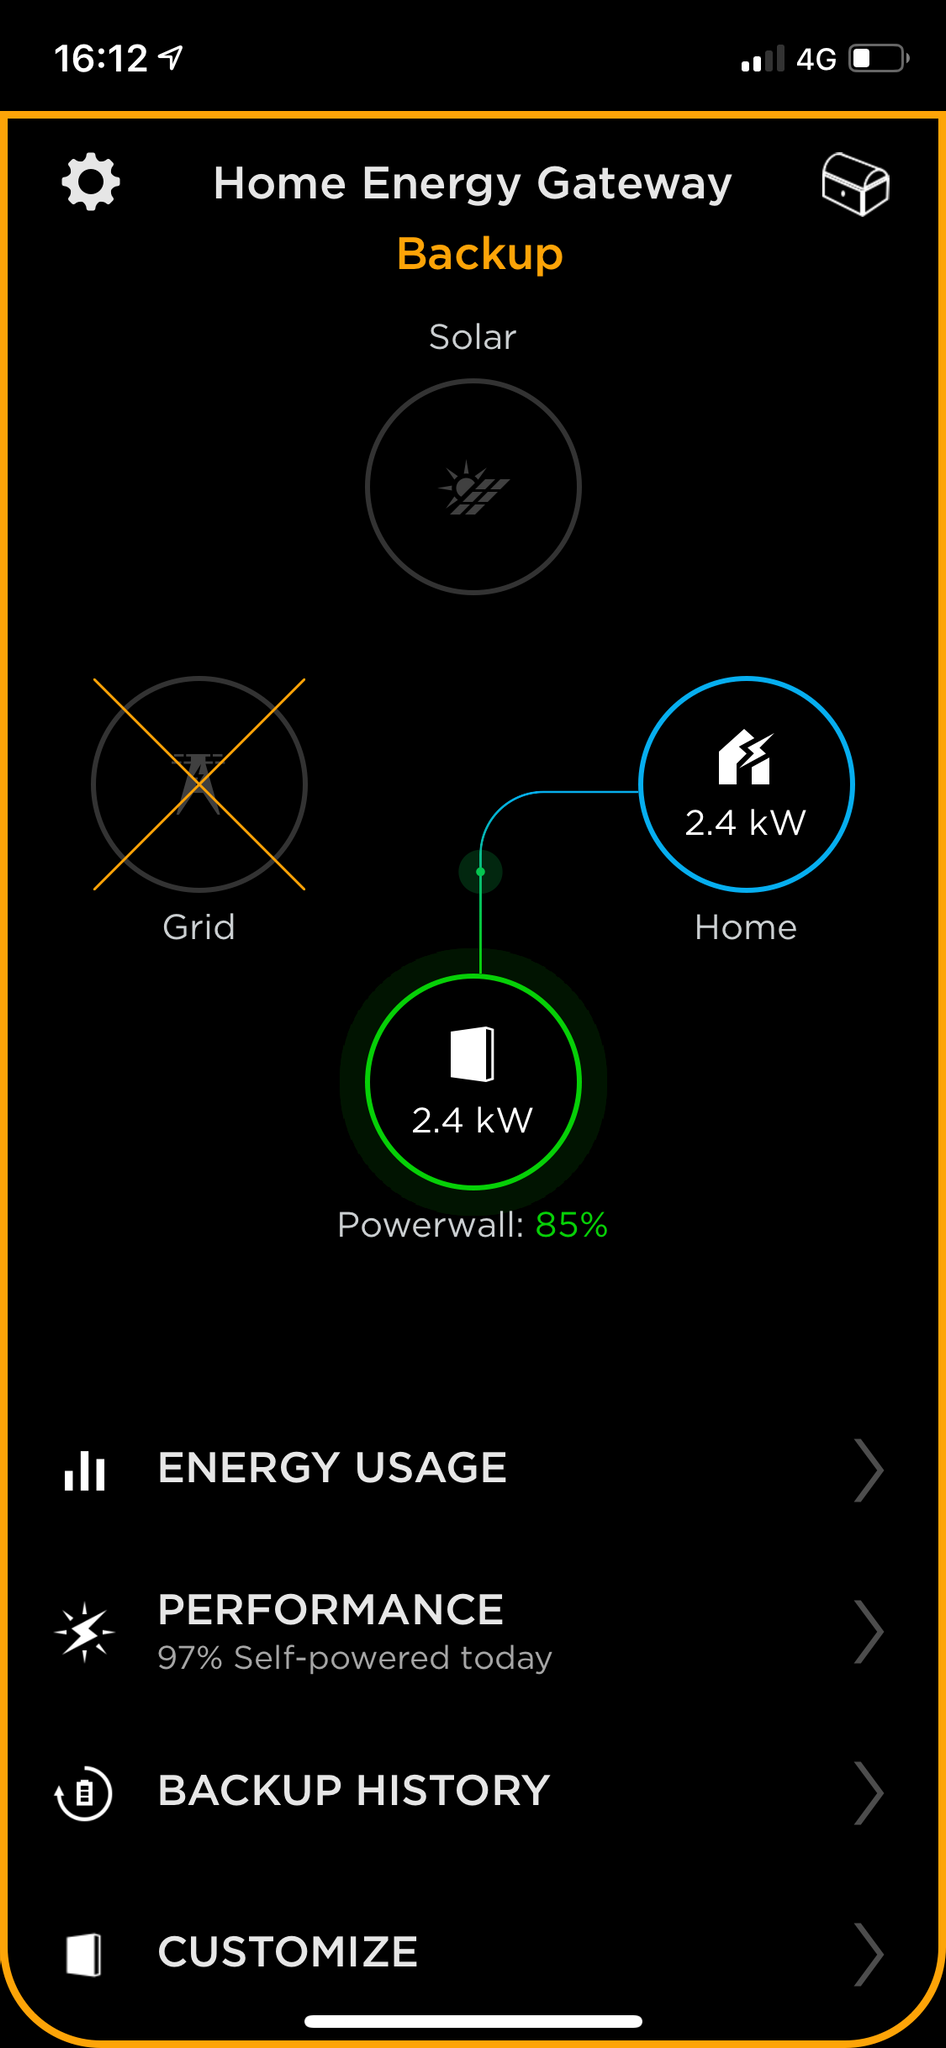 A screenshot from the Tesla app showing that we have no grid power and are running in backup mode solely off the Powerwall.